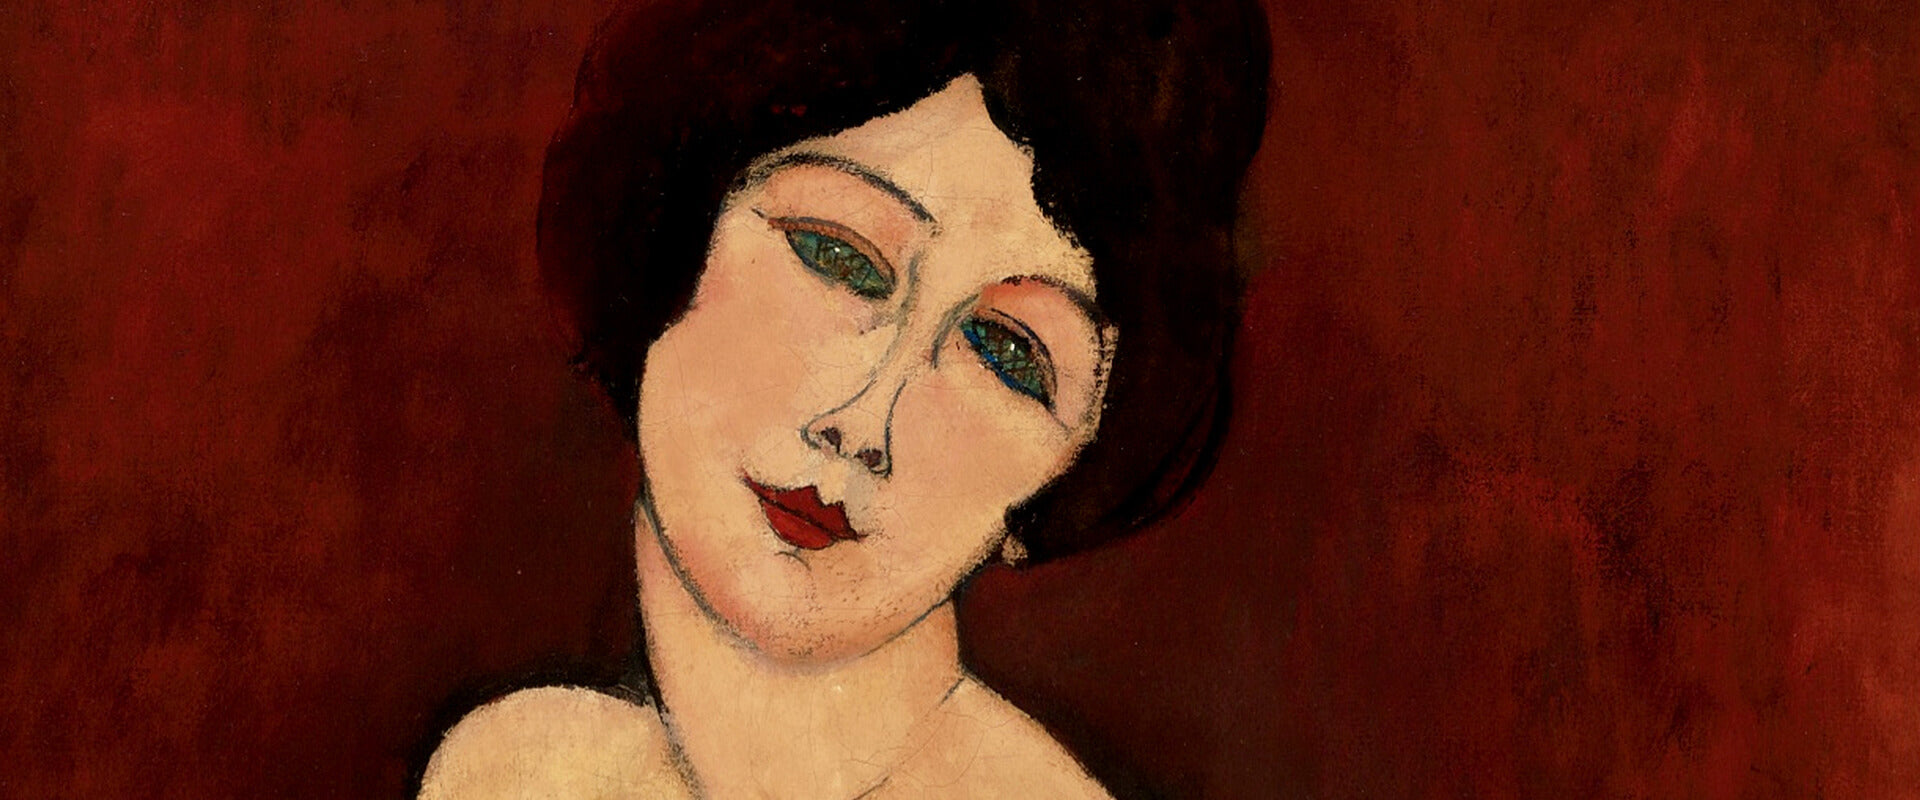 Amedeo Modigliani Artworks Collection | Buy Posters, Frames, Canvas, Digital Art & Large Size Prints Of The Famous Modern Master's Artworks